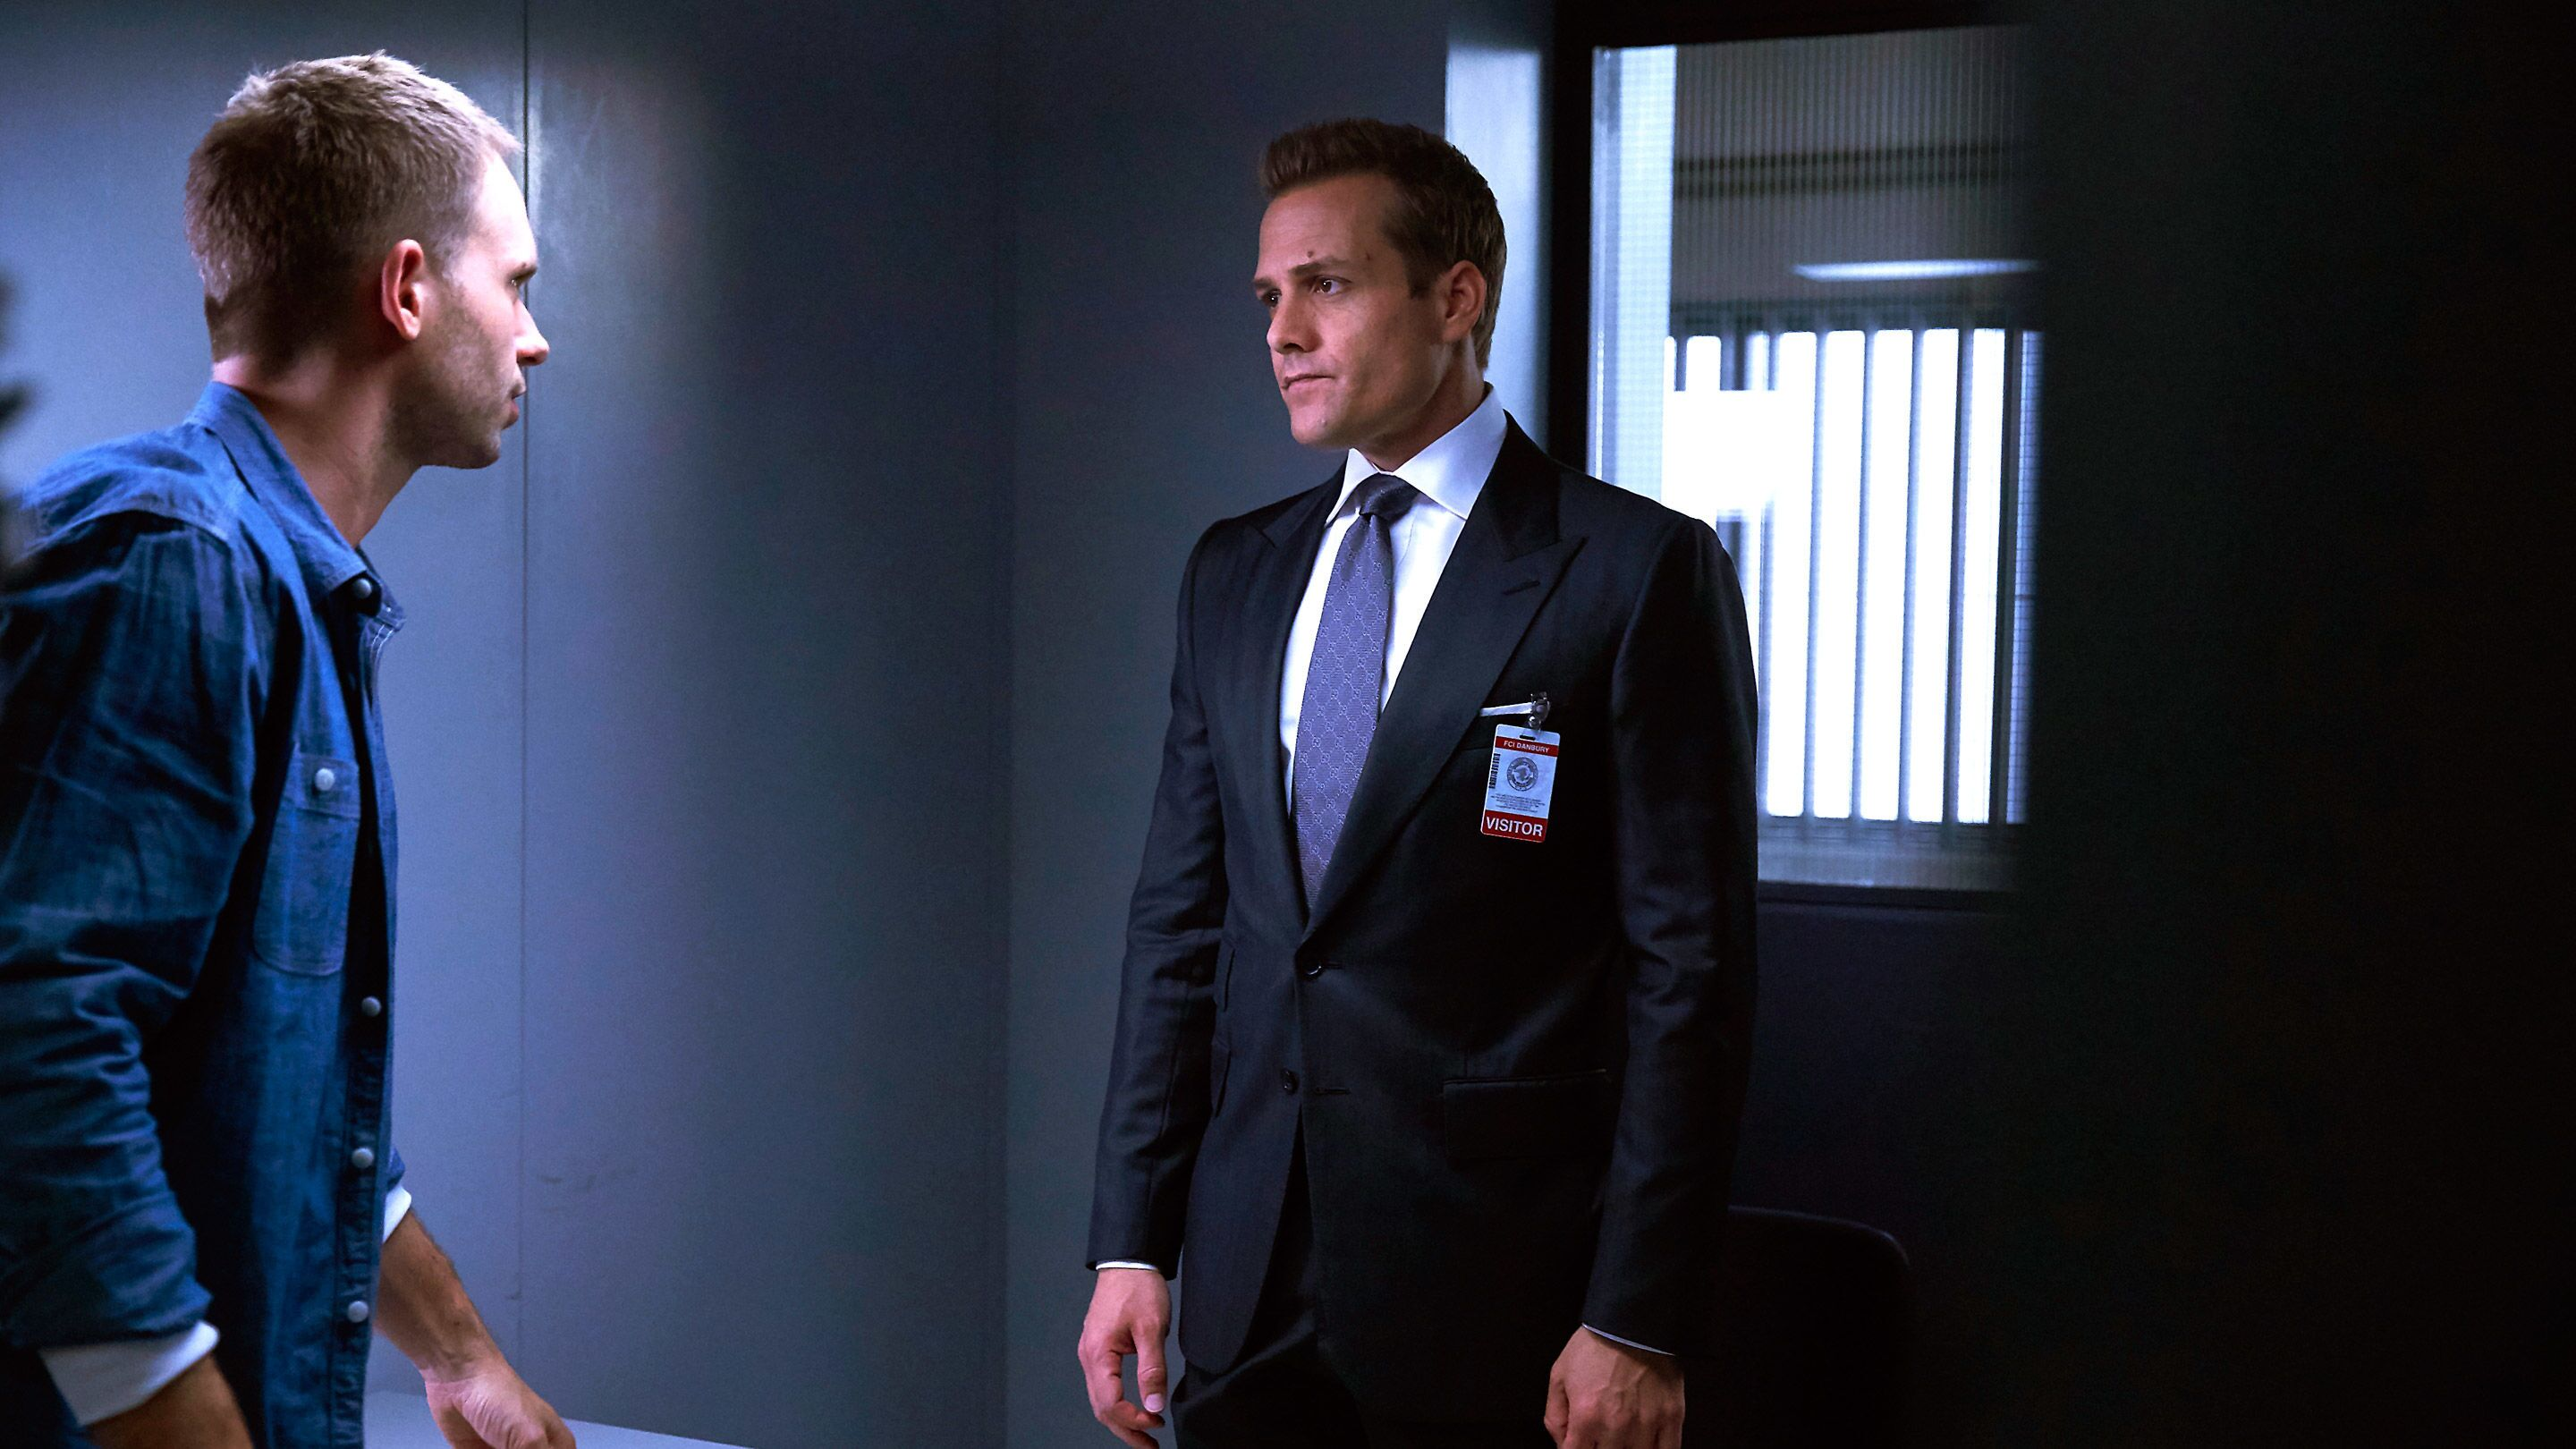 Watch Suits Season 1 Episode 3 - Watch Suits Season 1